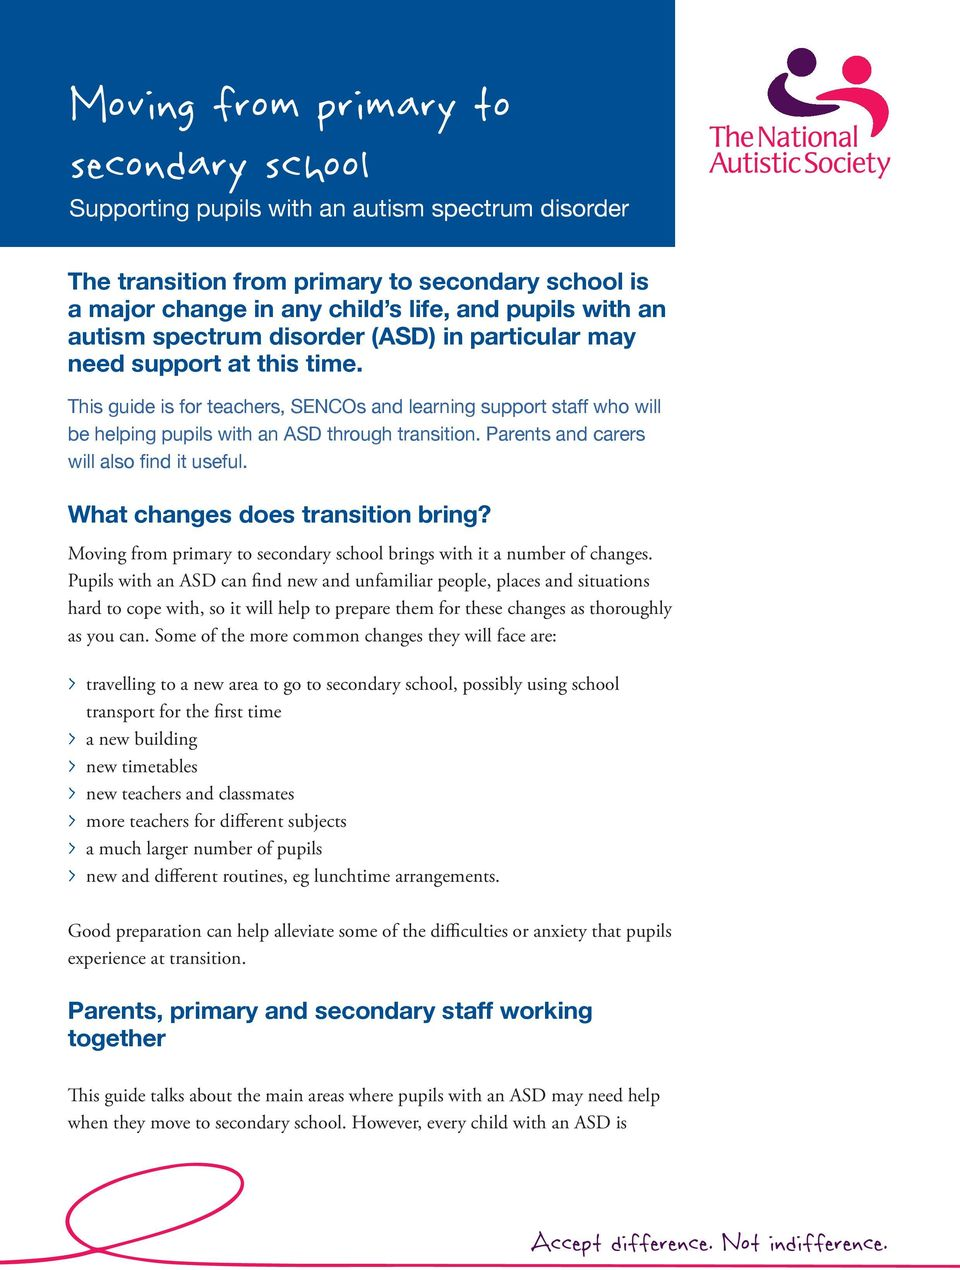 Parents and carers will also find it useful. What changes does transition bring? Moving from primary to secondary school brings with it a number of changes.